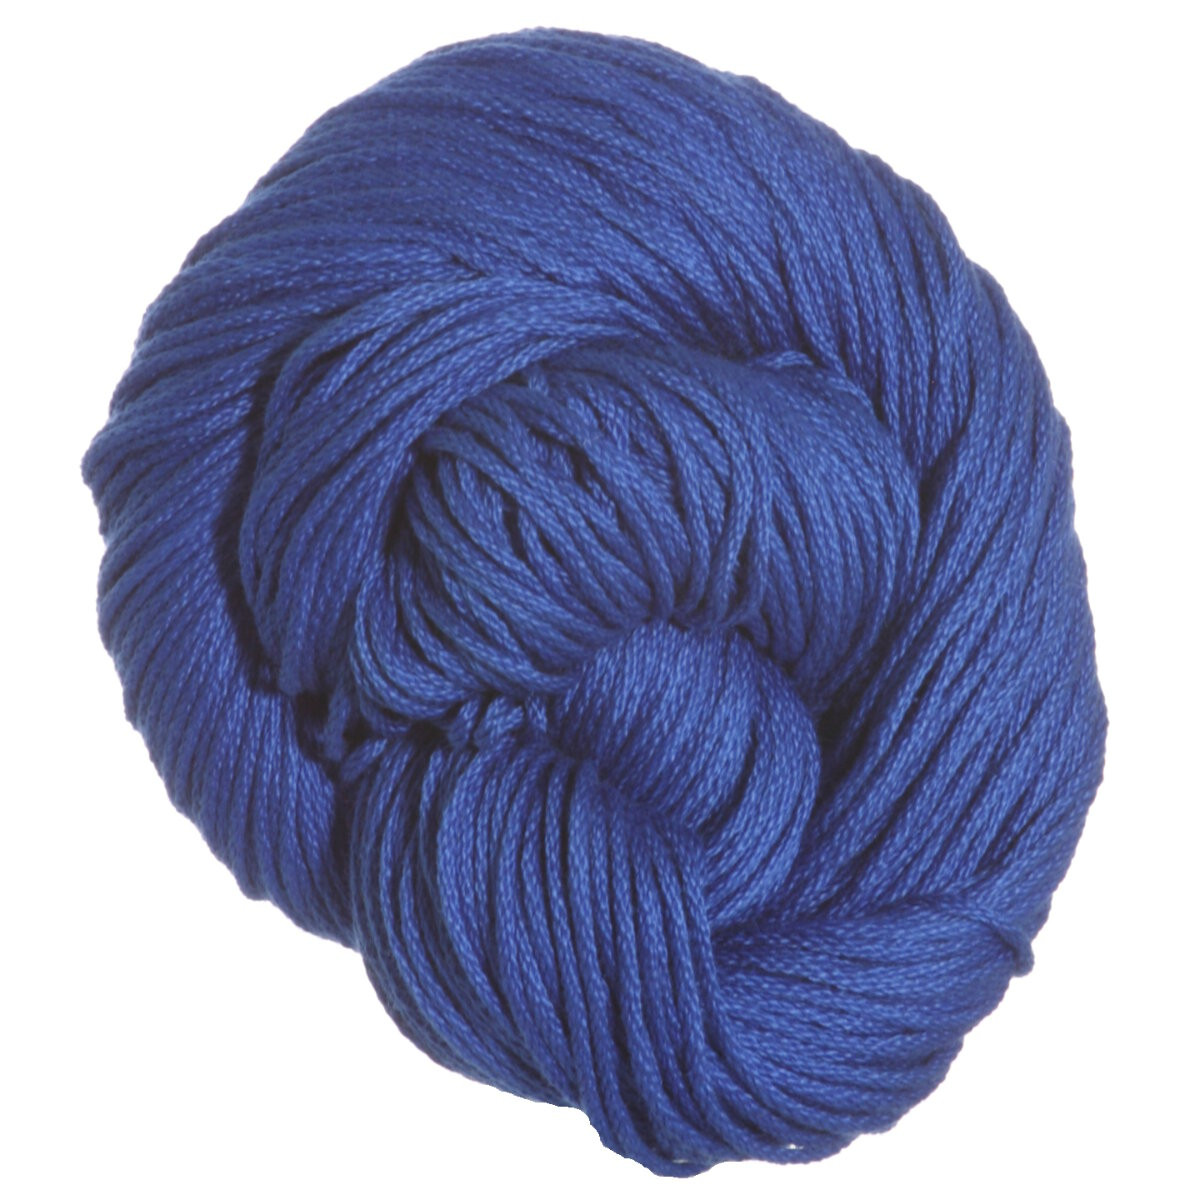 Tahki Cotton Classic Best Of Tahki Cotton Classic Yarn 3870 Dark Bright Blue at Of Incredible 46 Pictures Tahki Cotton Classic